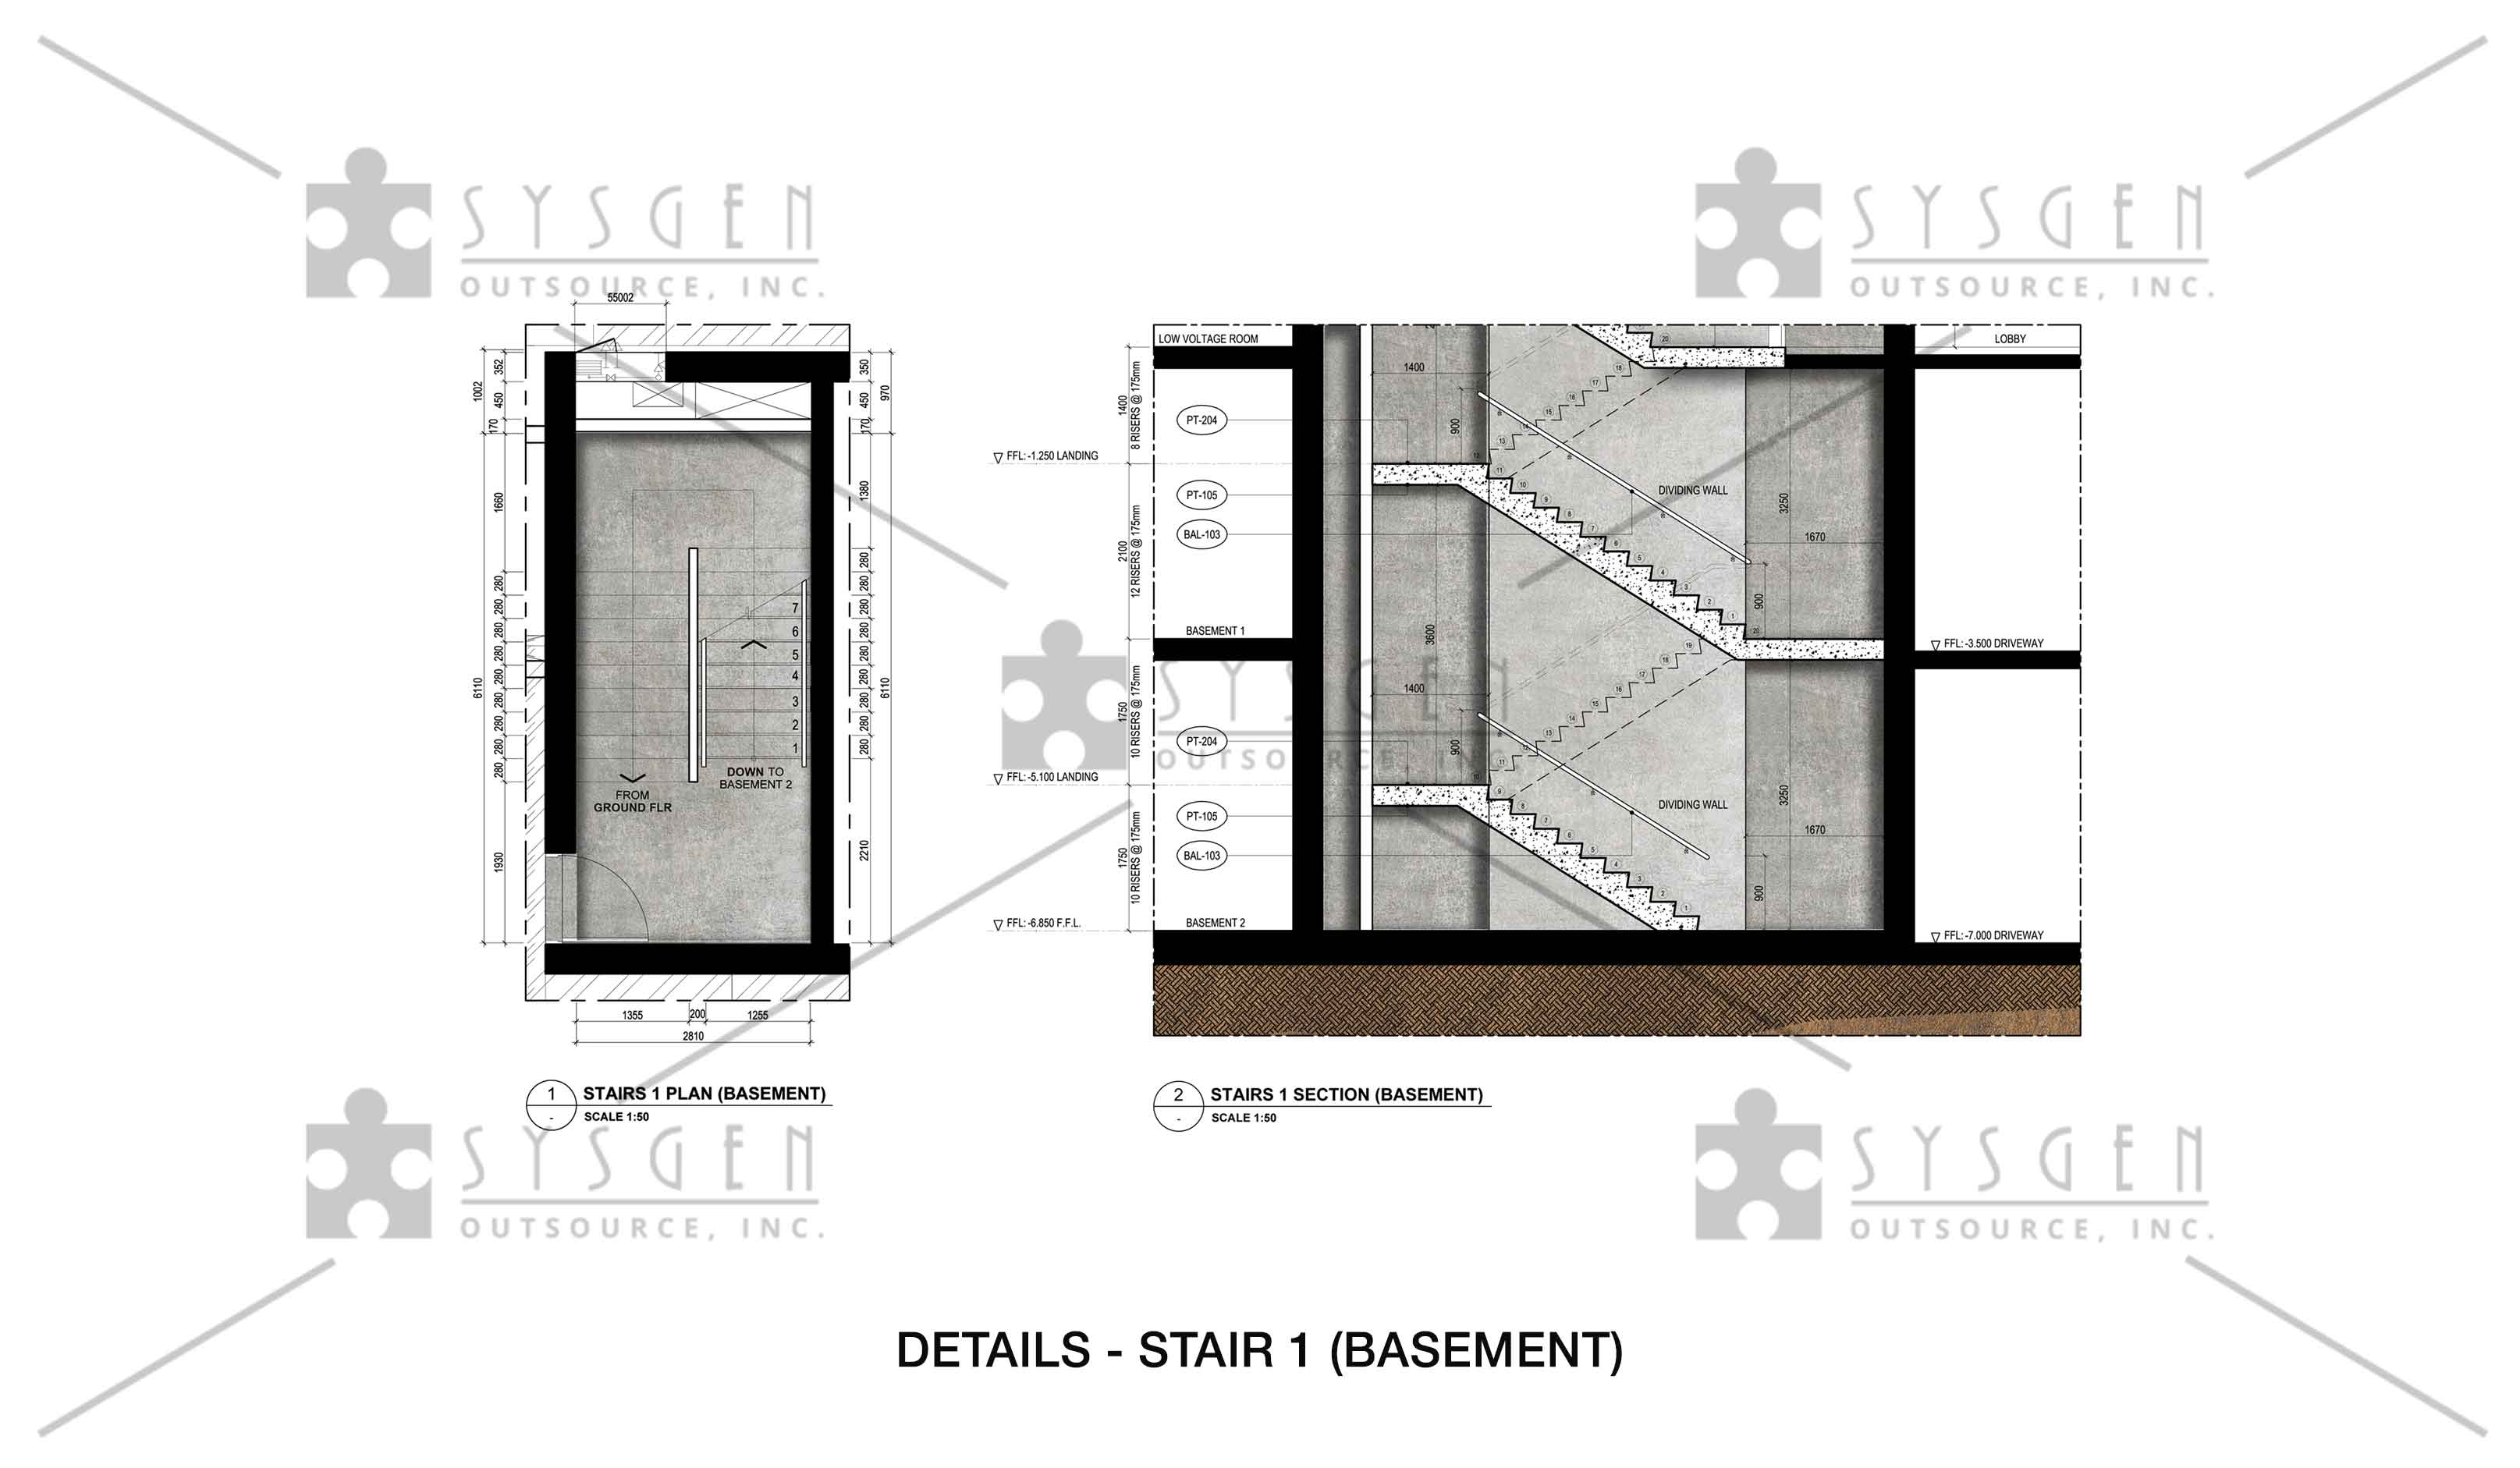 sysgen-outsource-cad-outsourcing-services-sketch-up-apartment14